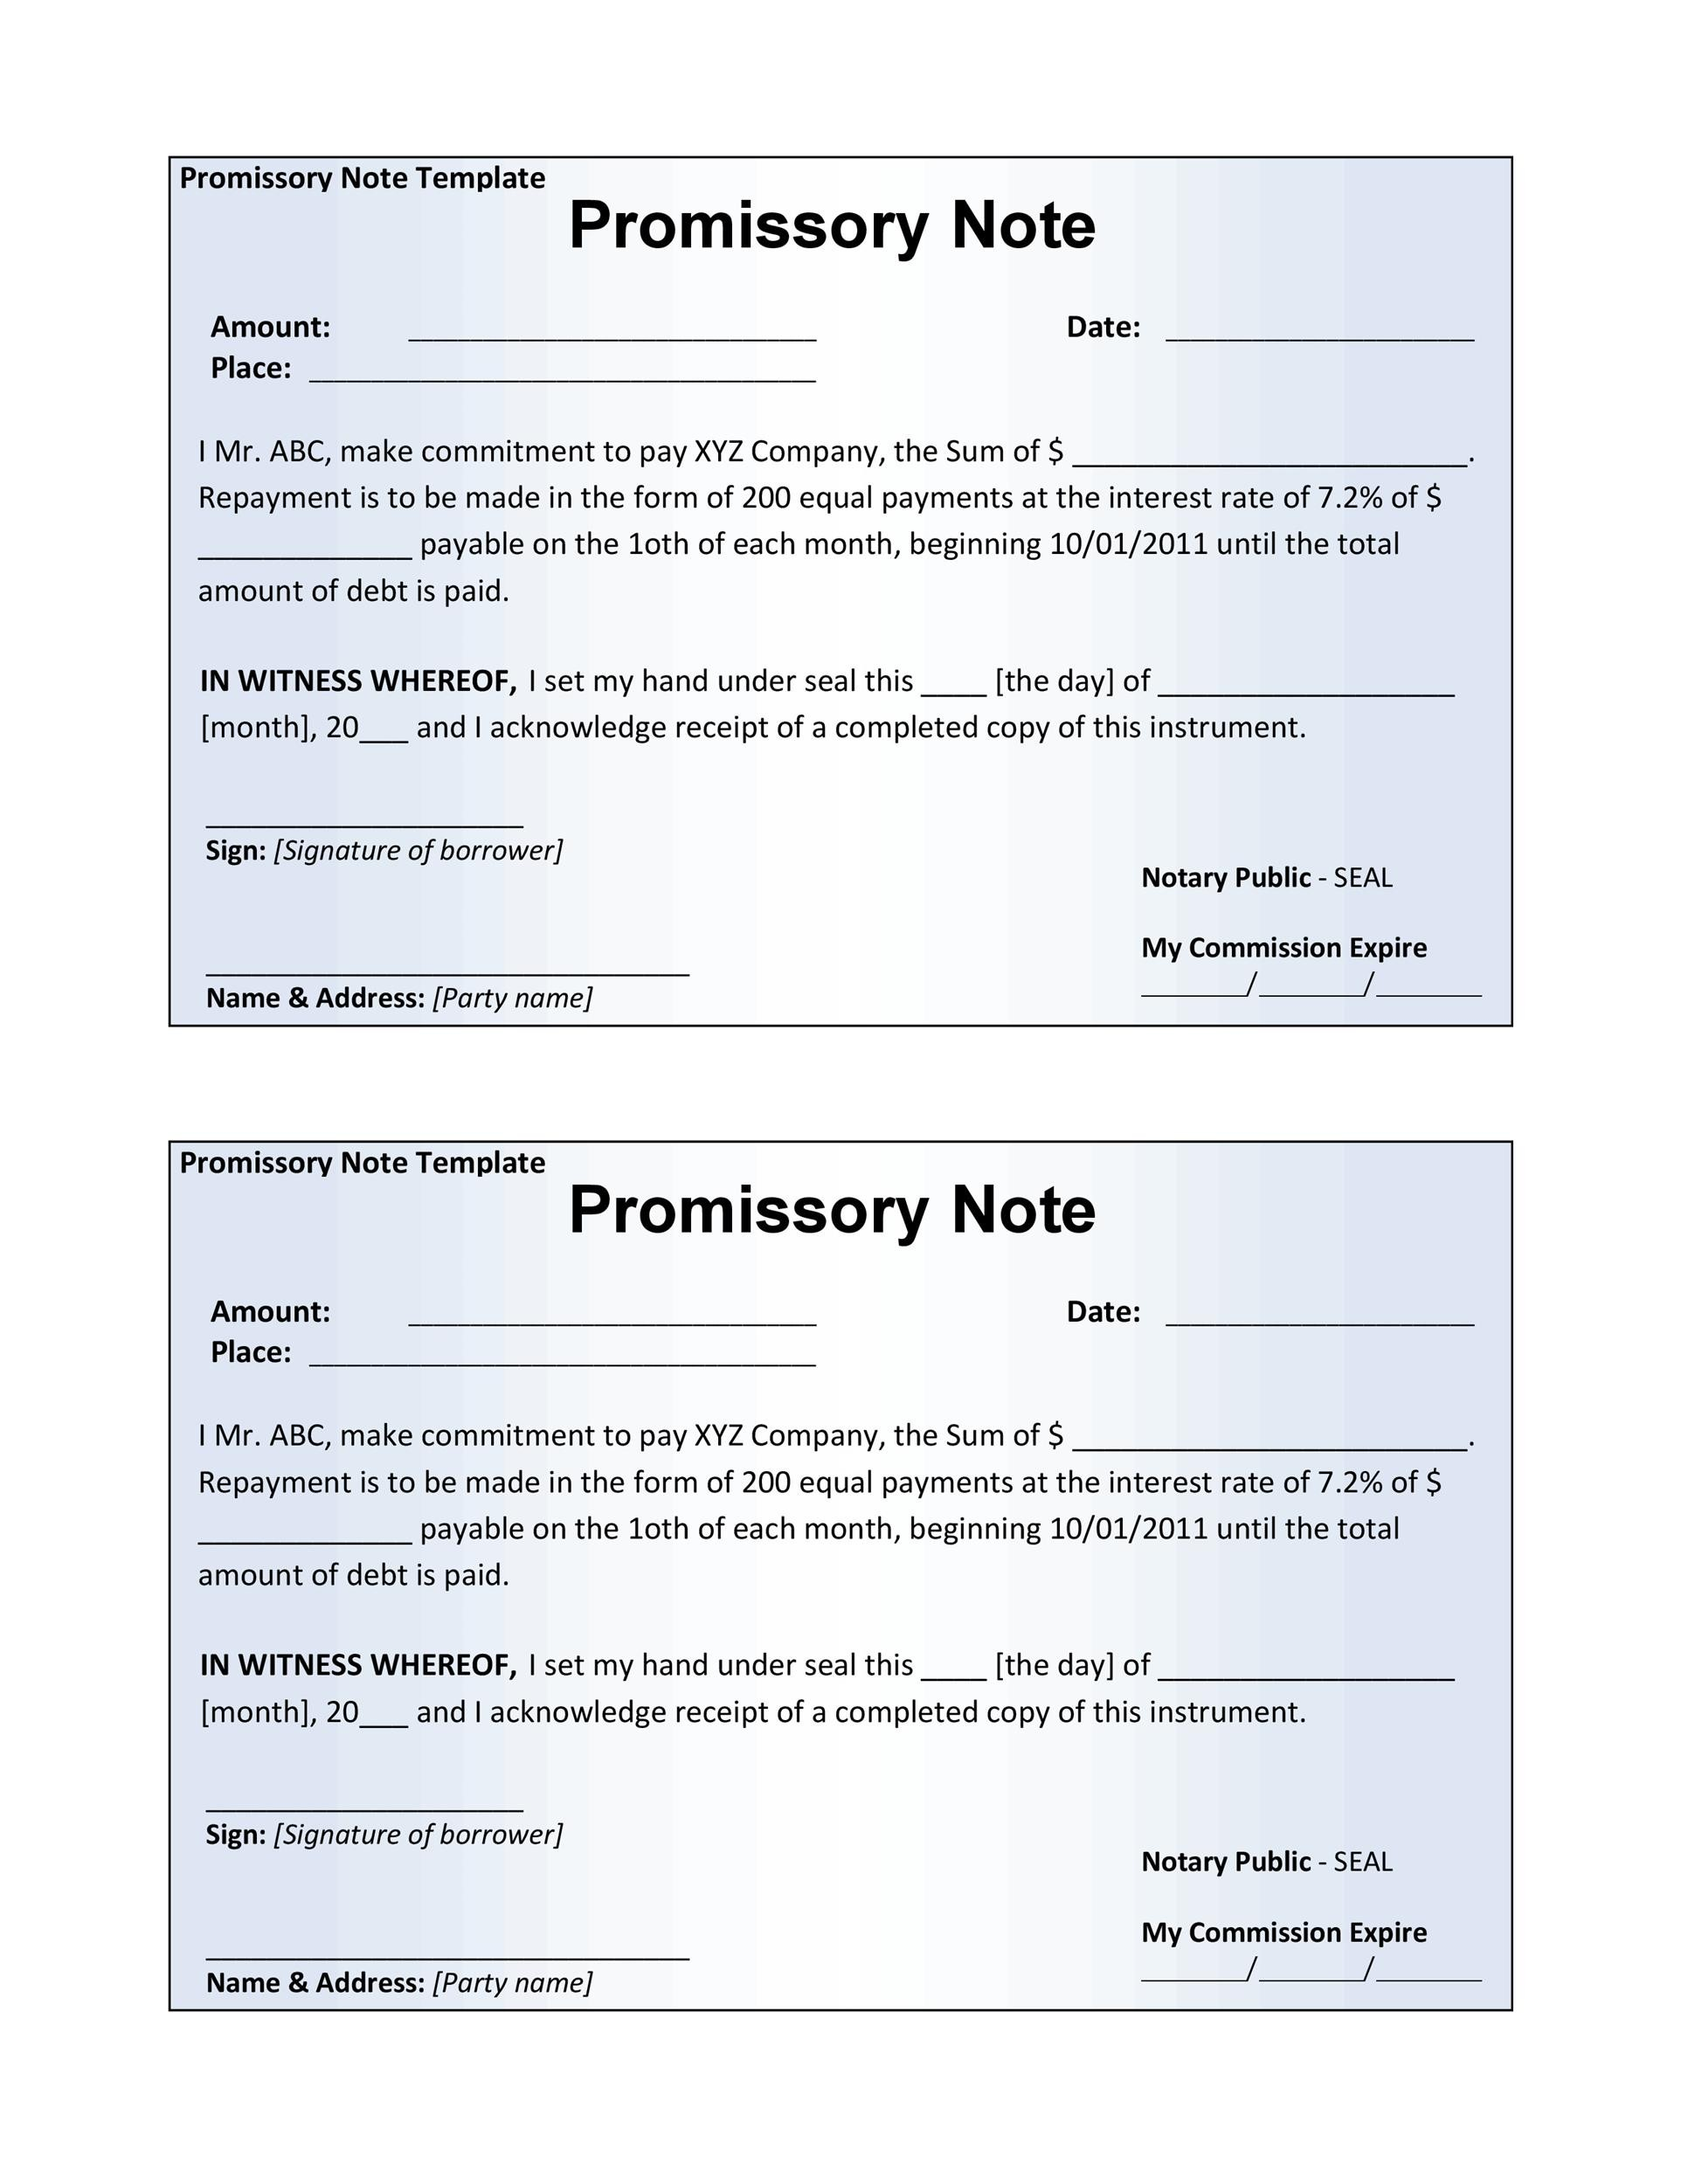 Free promissory note template 45